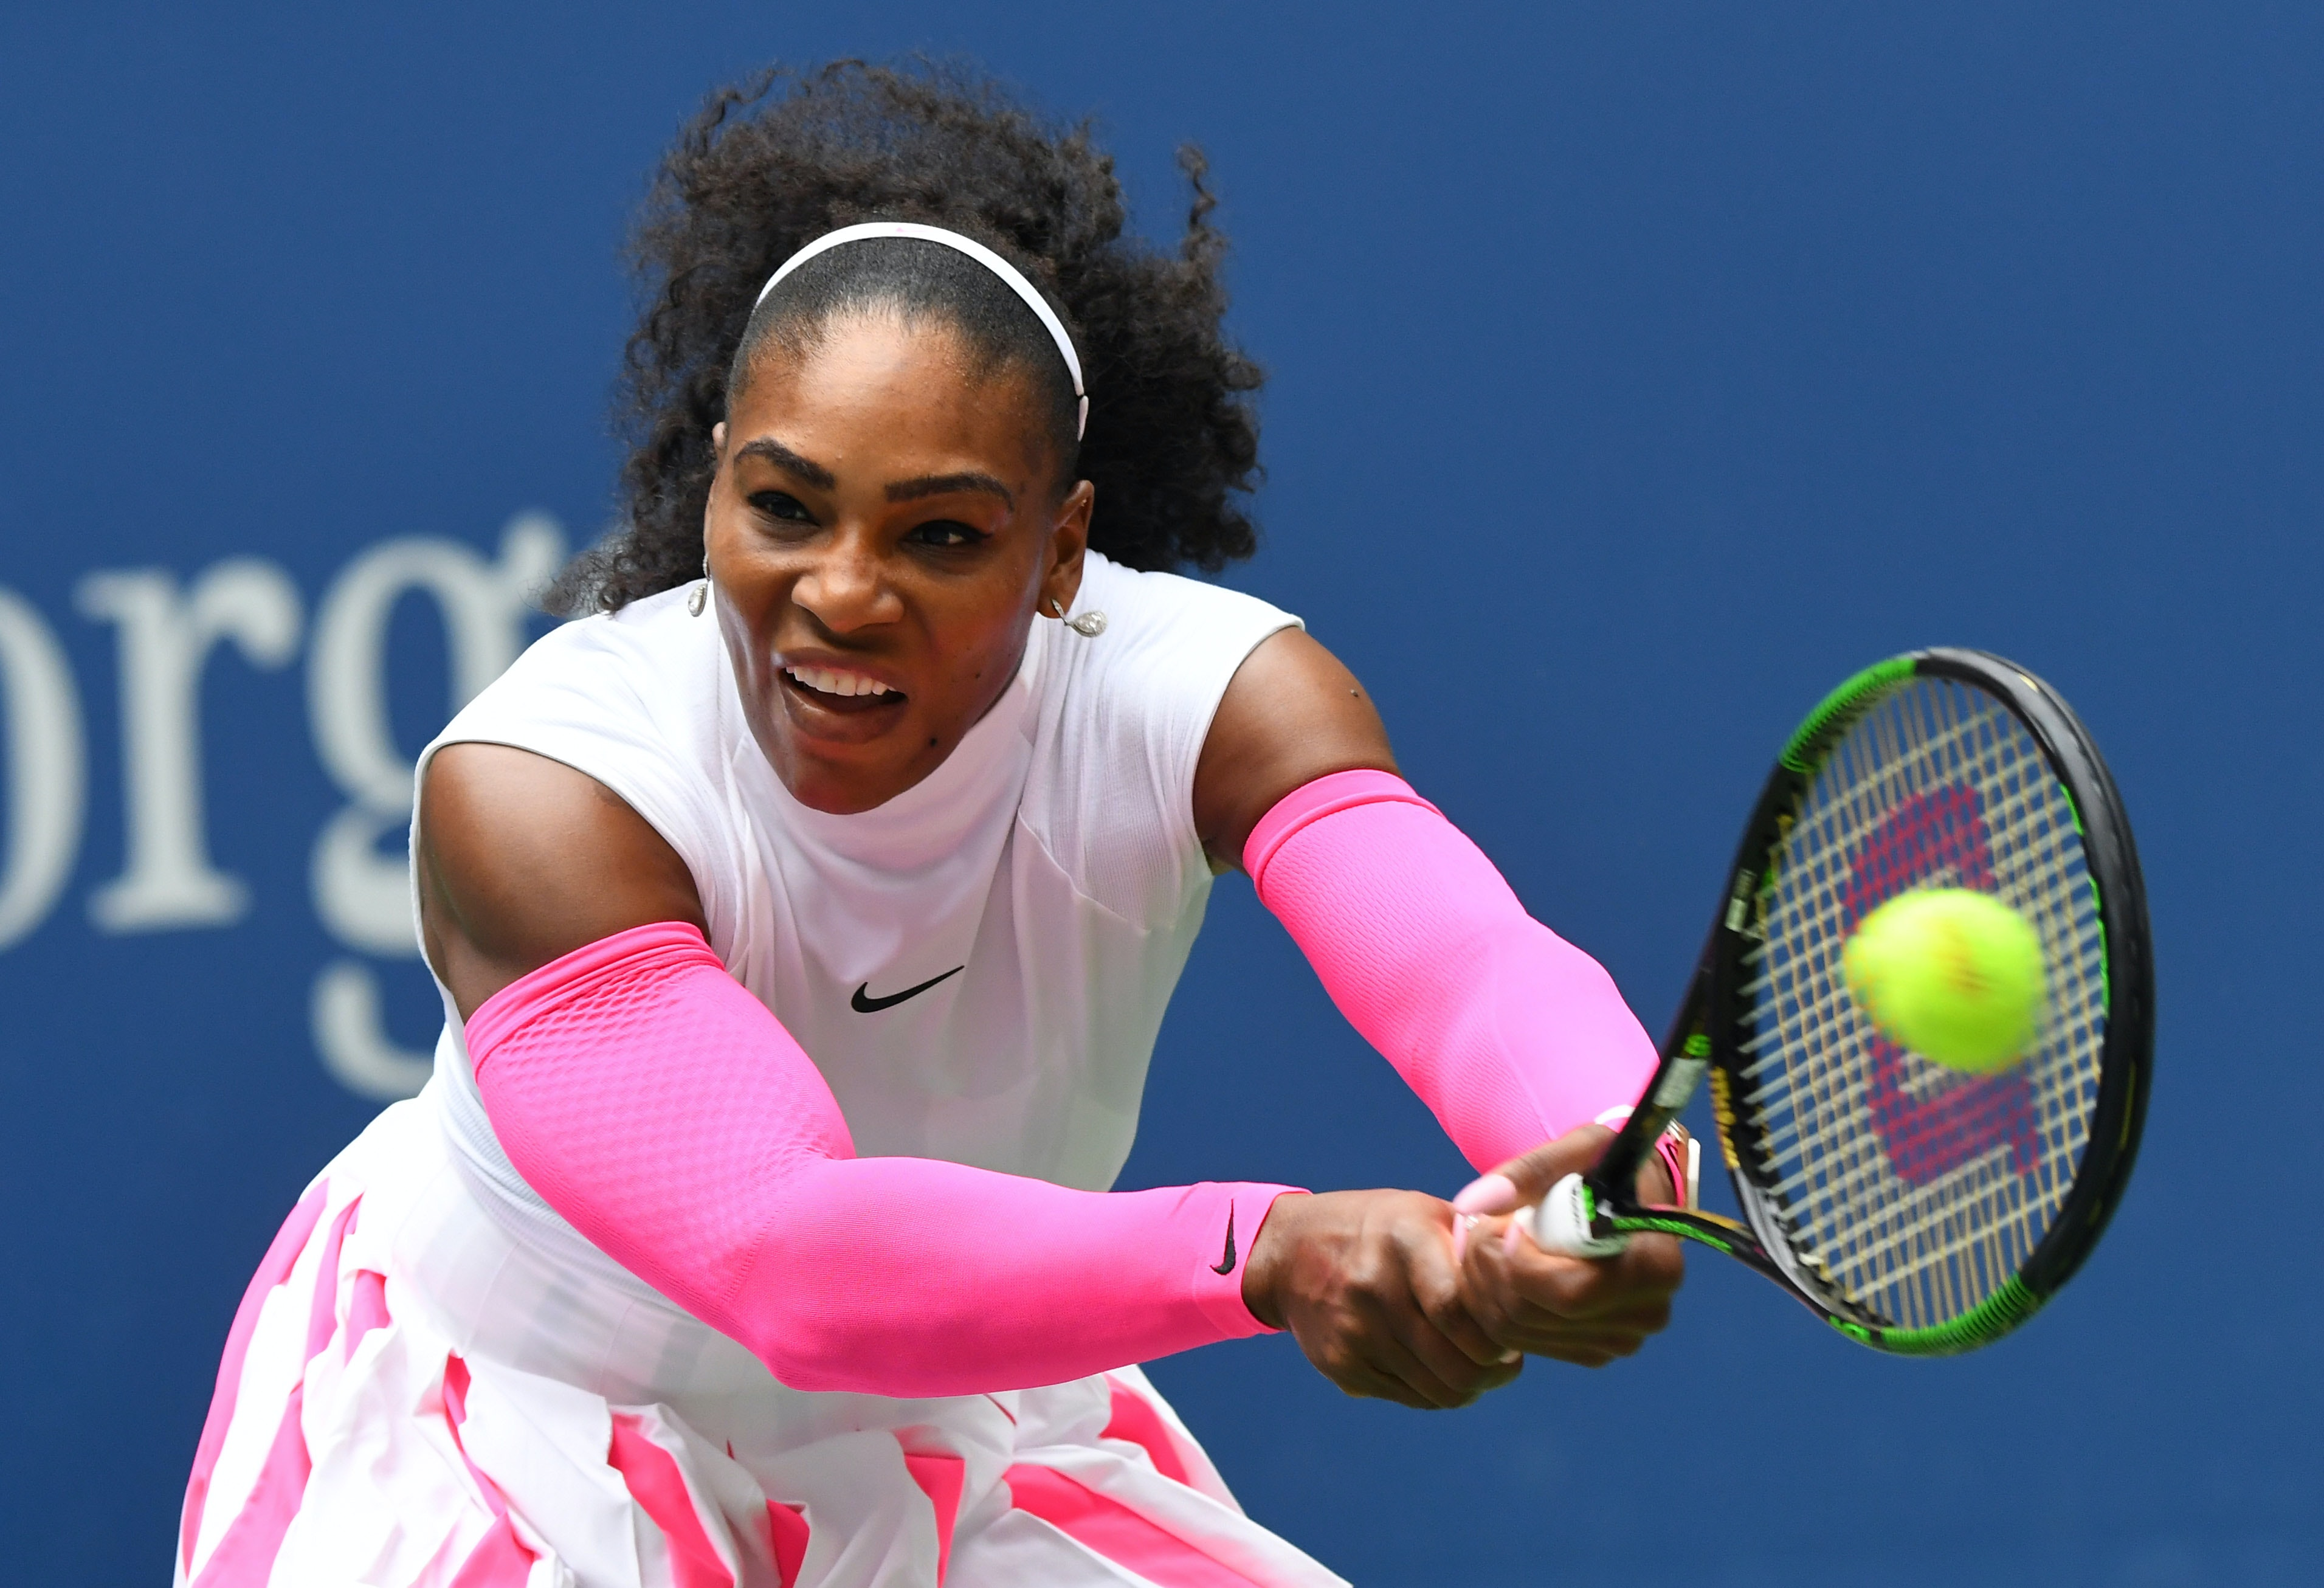 Just How Great A Tennis Player Is Serena Williams